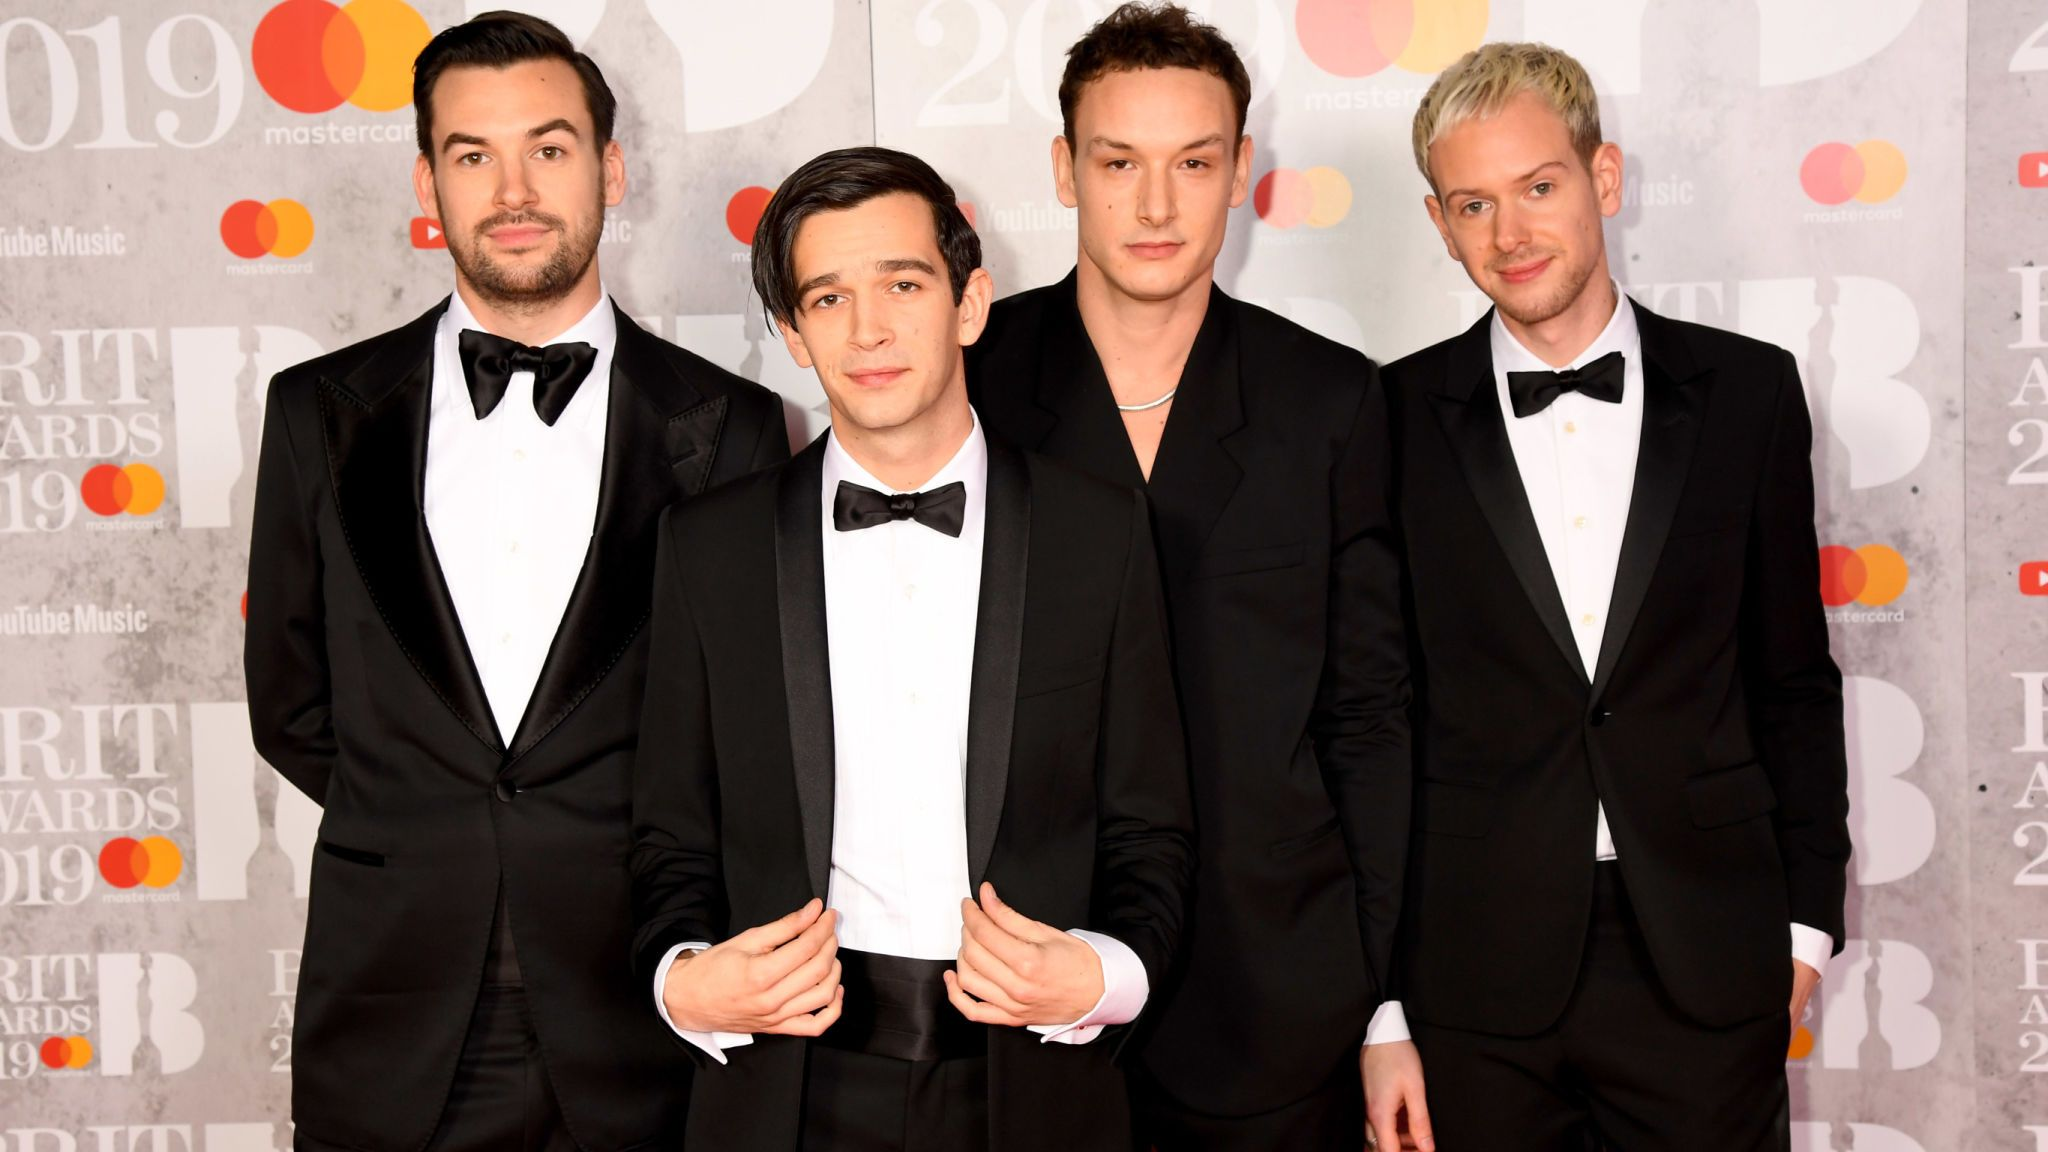 (From left) Ross MacDonald, Matthew Healy, George Daniel and Adam Hann of The 1975 are about to embark on a world tour